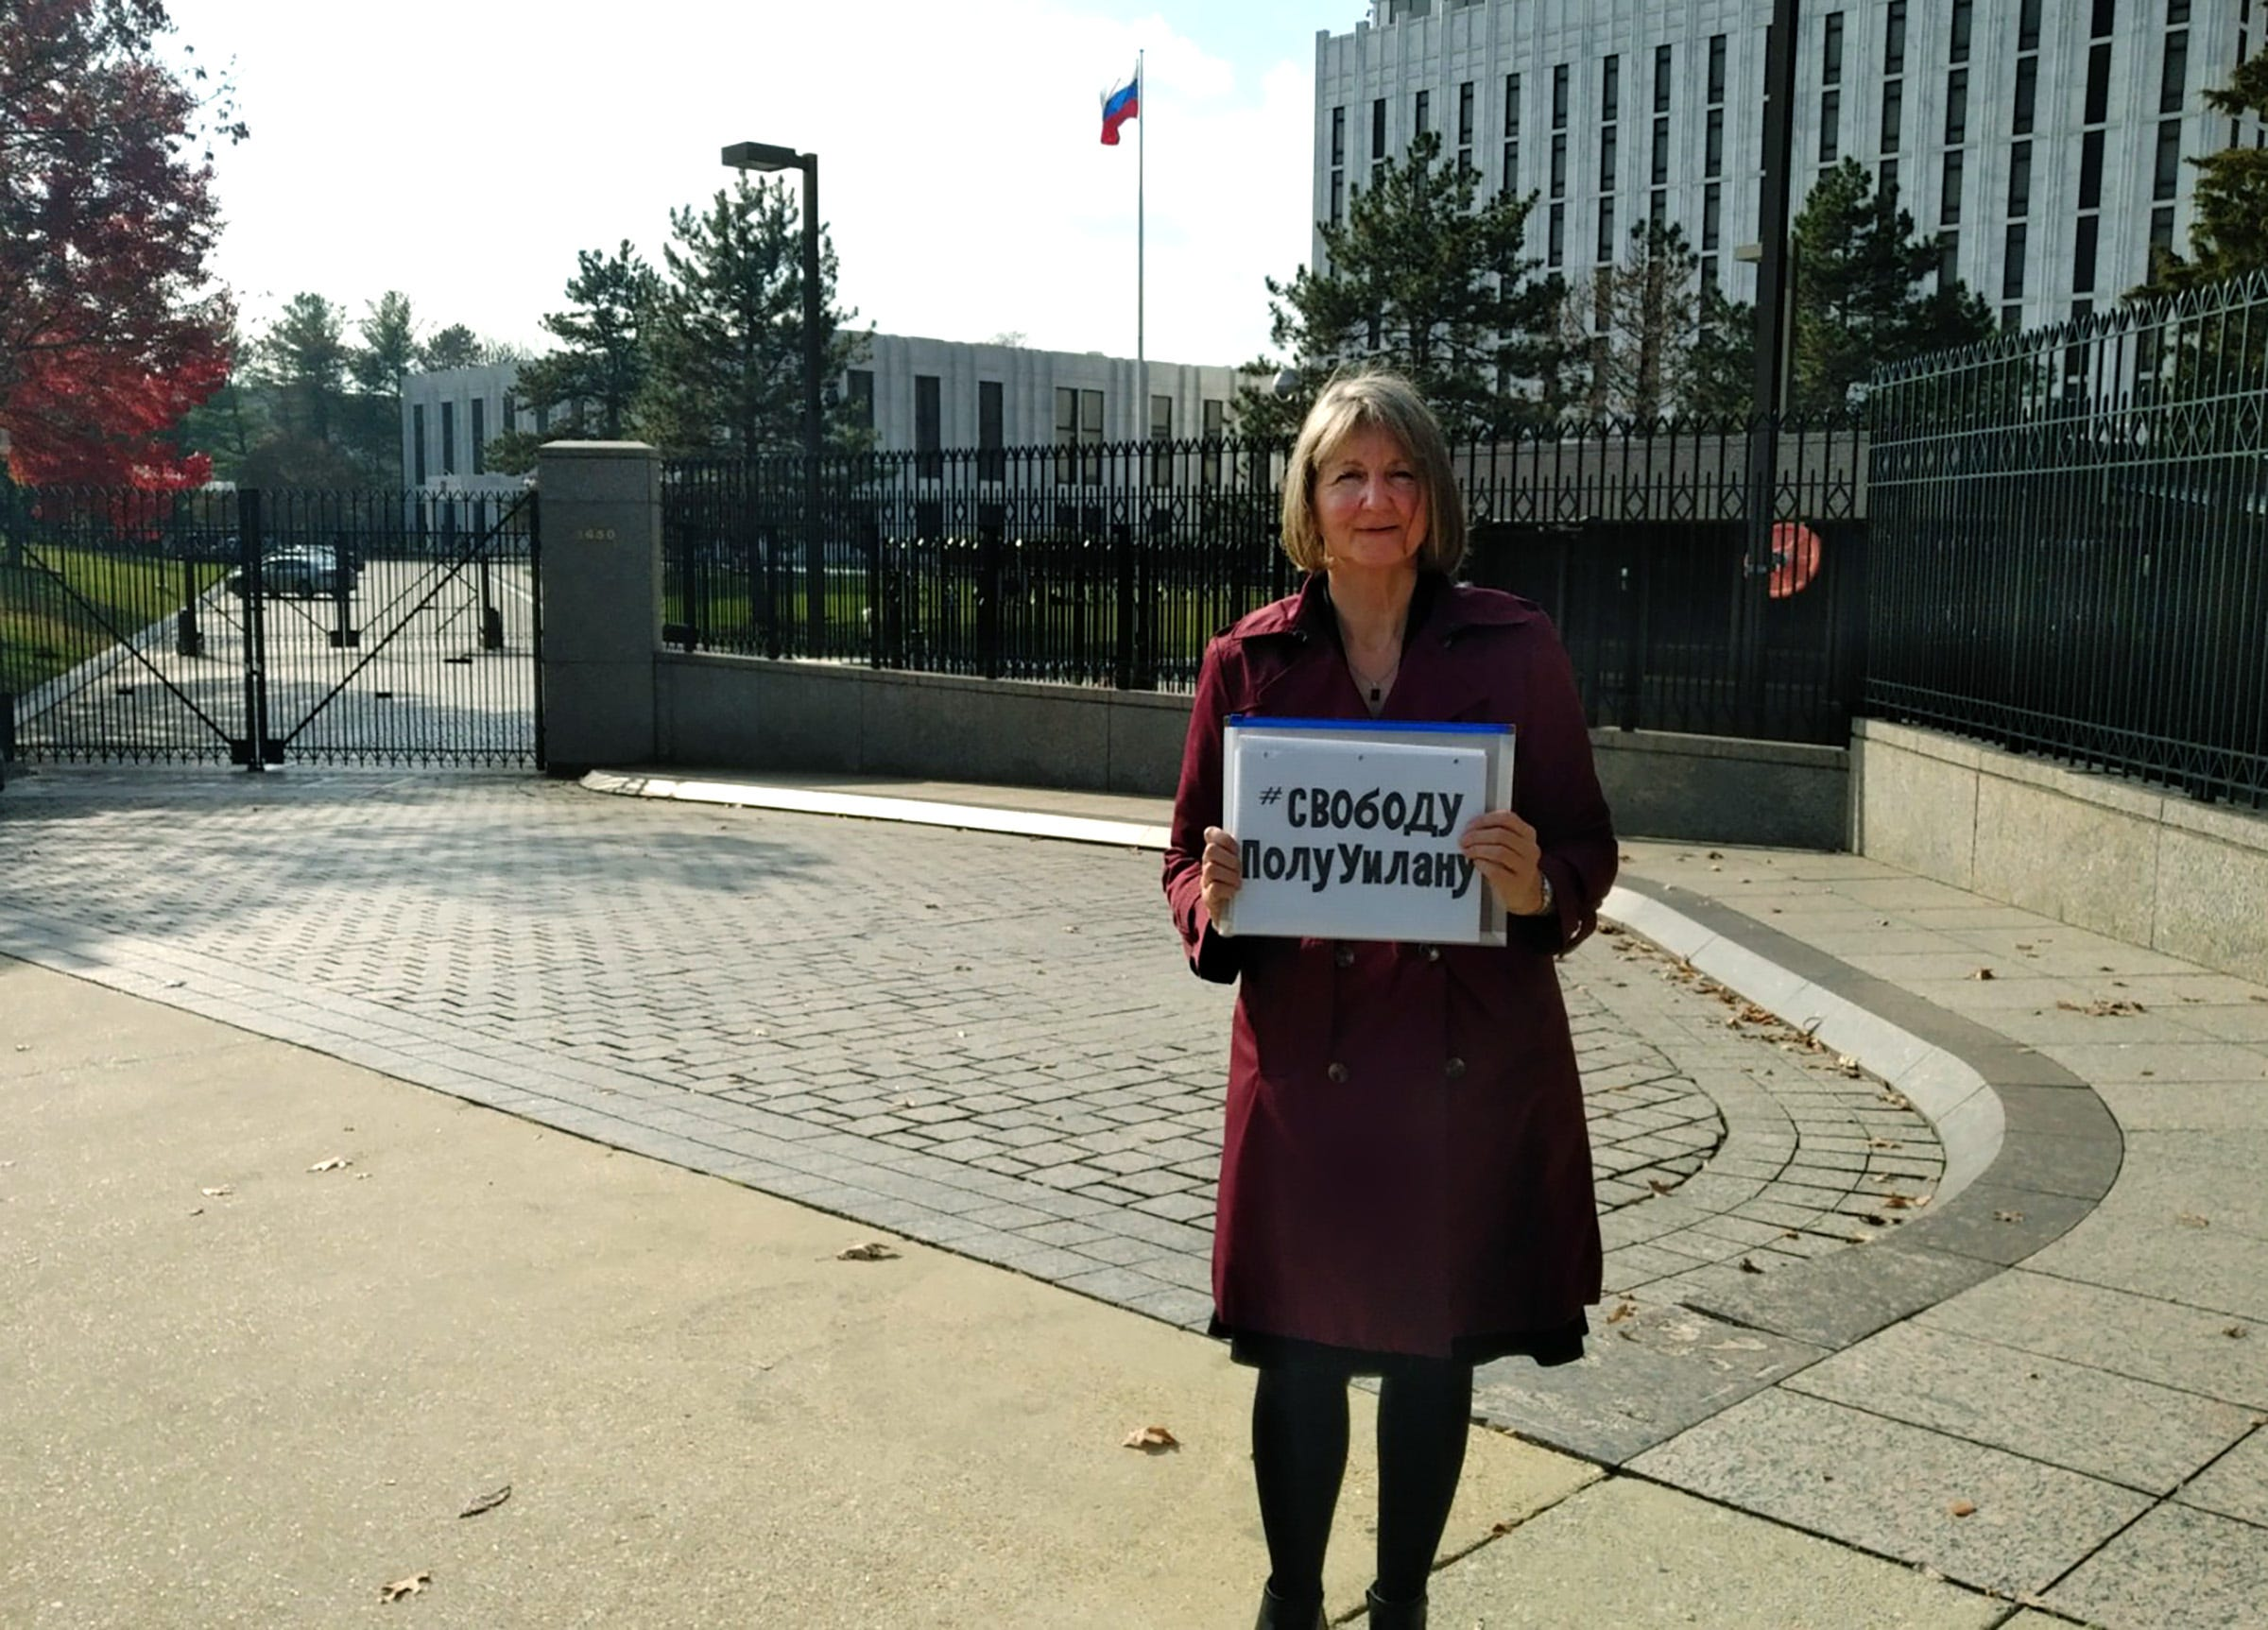 Elizabeth Whelan holds up a sign that says #FreePaulWhelan in Cyrllic in front of the Russian embassy in Washington, D.C. She's the sister of Paul Whelan, the Michigan man who is accused of spying in Russia.